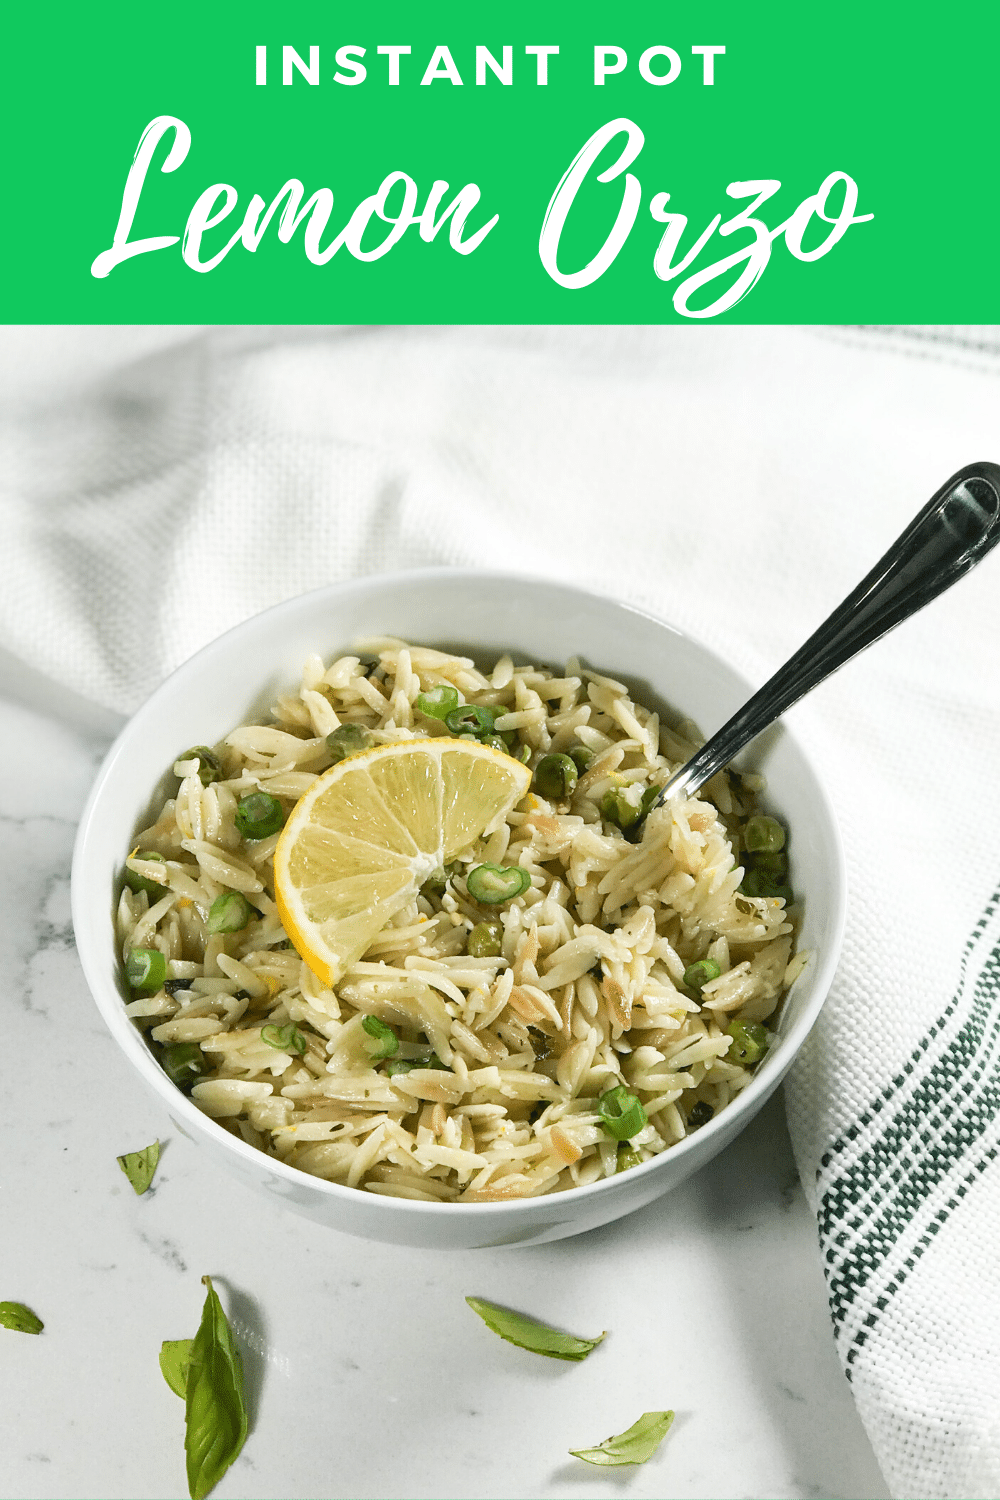 Lemon Orzo With Peas (Instant Pot)